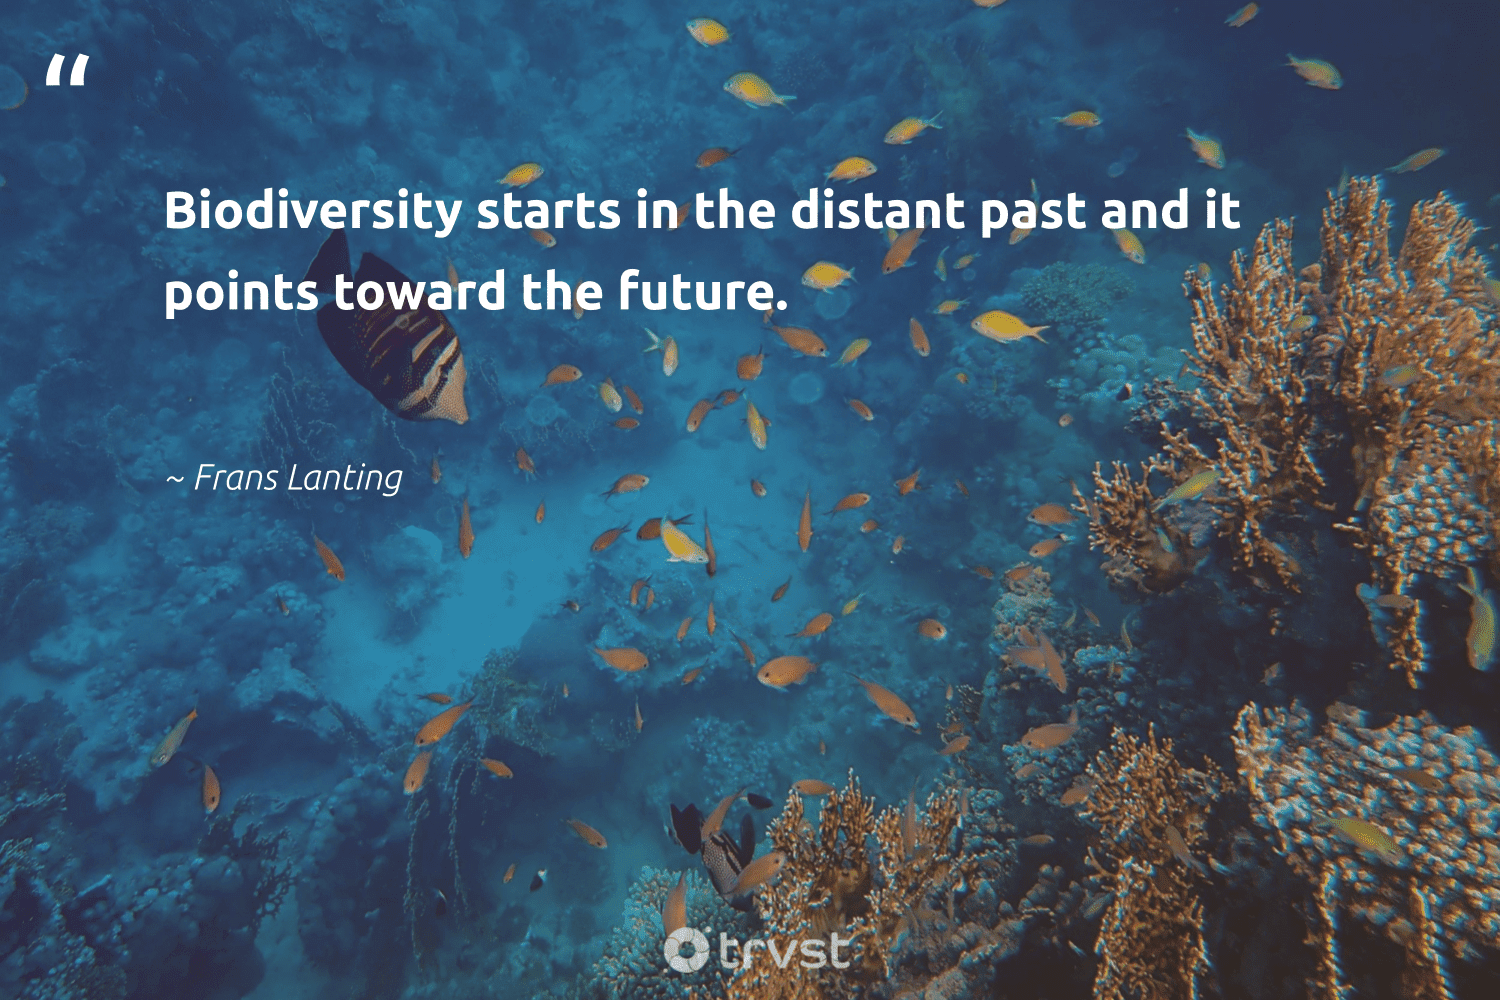 """""""Biodiversity starts in the distant past and it points toward the future.""""  - Frans Lanting #trvst #quotes #biodiversity #environment #science #fish #bethechange #conservation #bird #nature #thinkgreen #natural"""